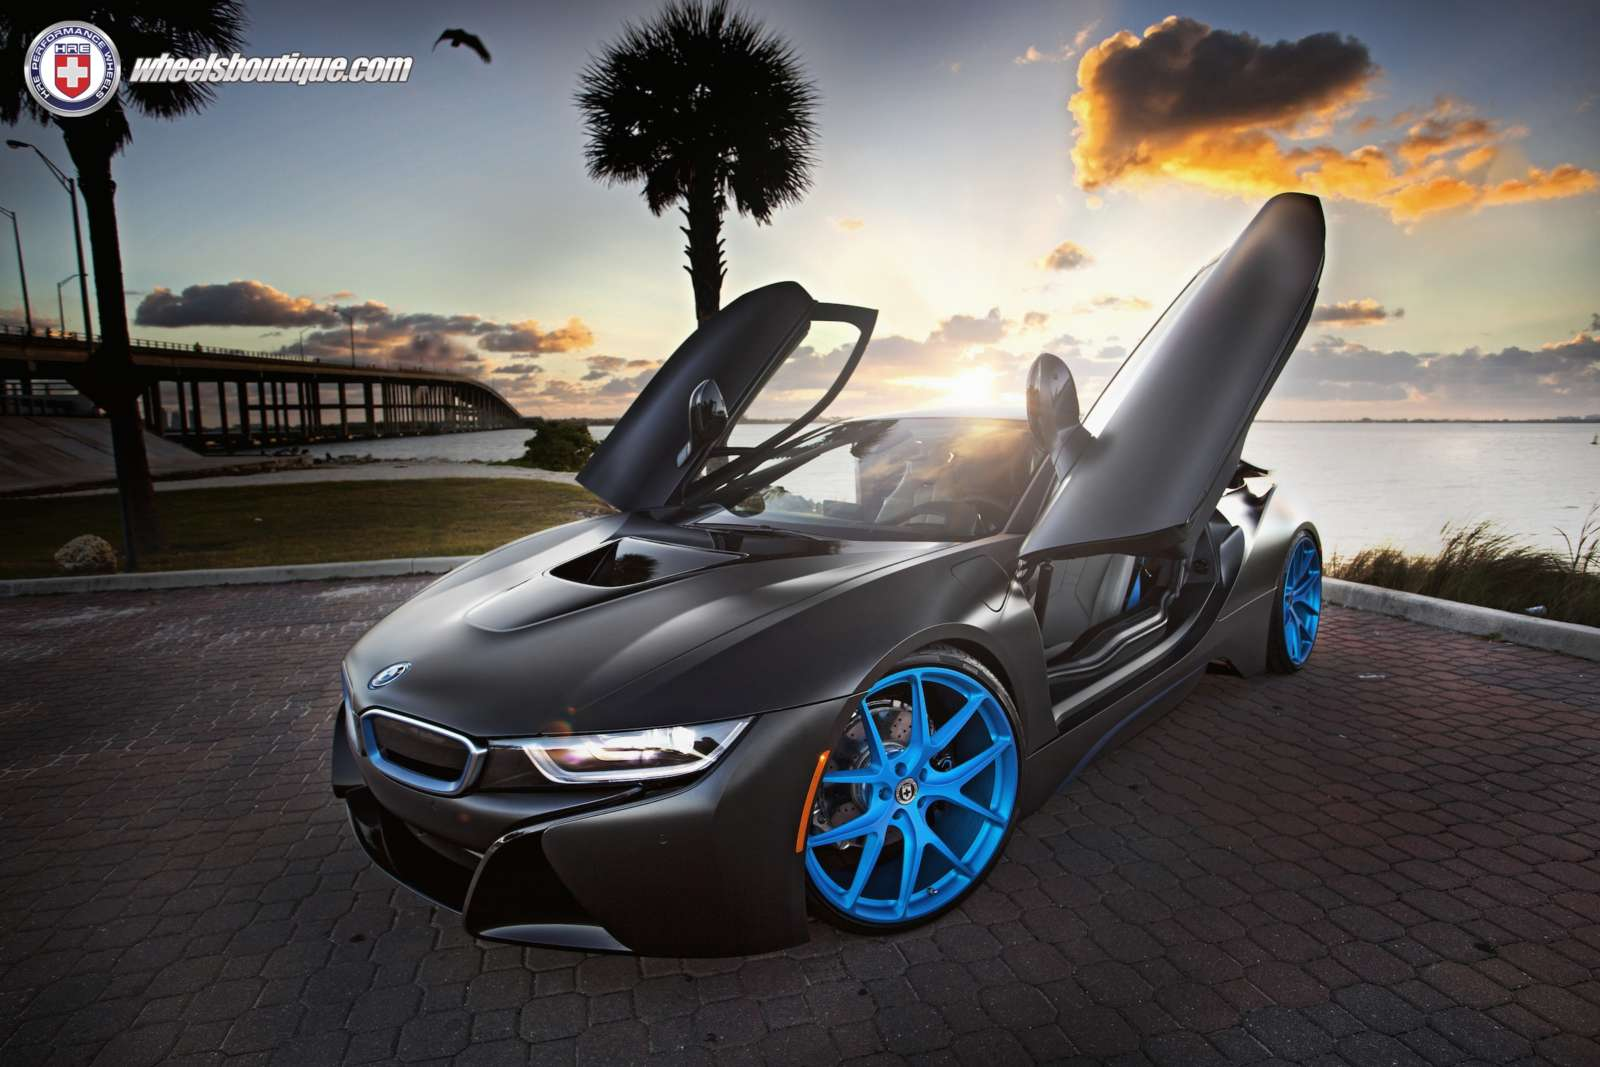 This Matte Black Wrapped Bmw I8 With Blue Hre Wheels Looks The Part Motoroids